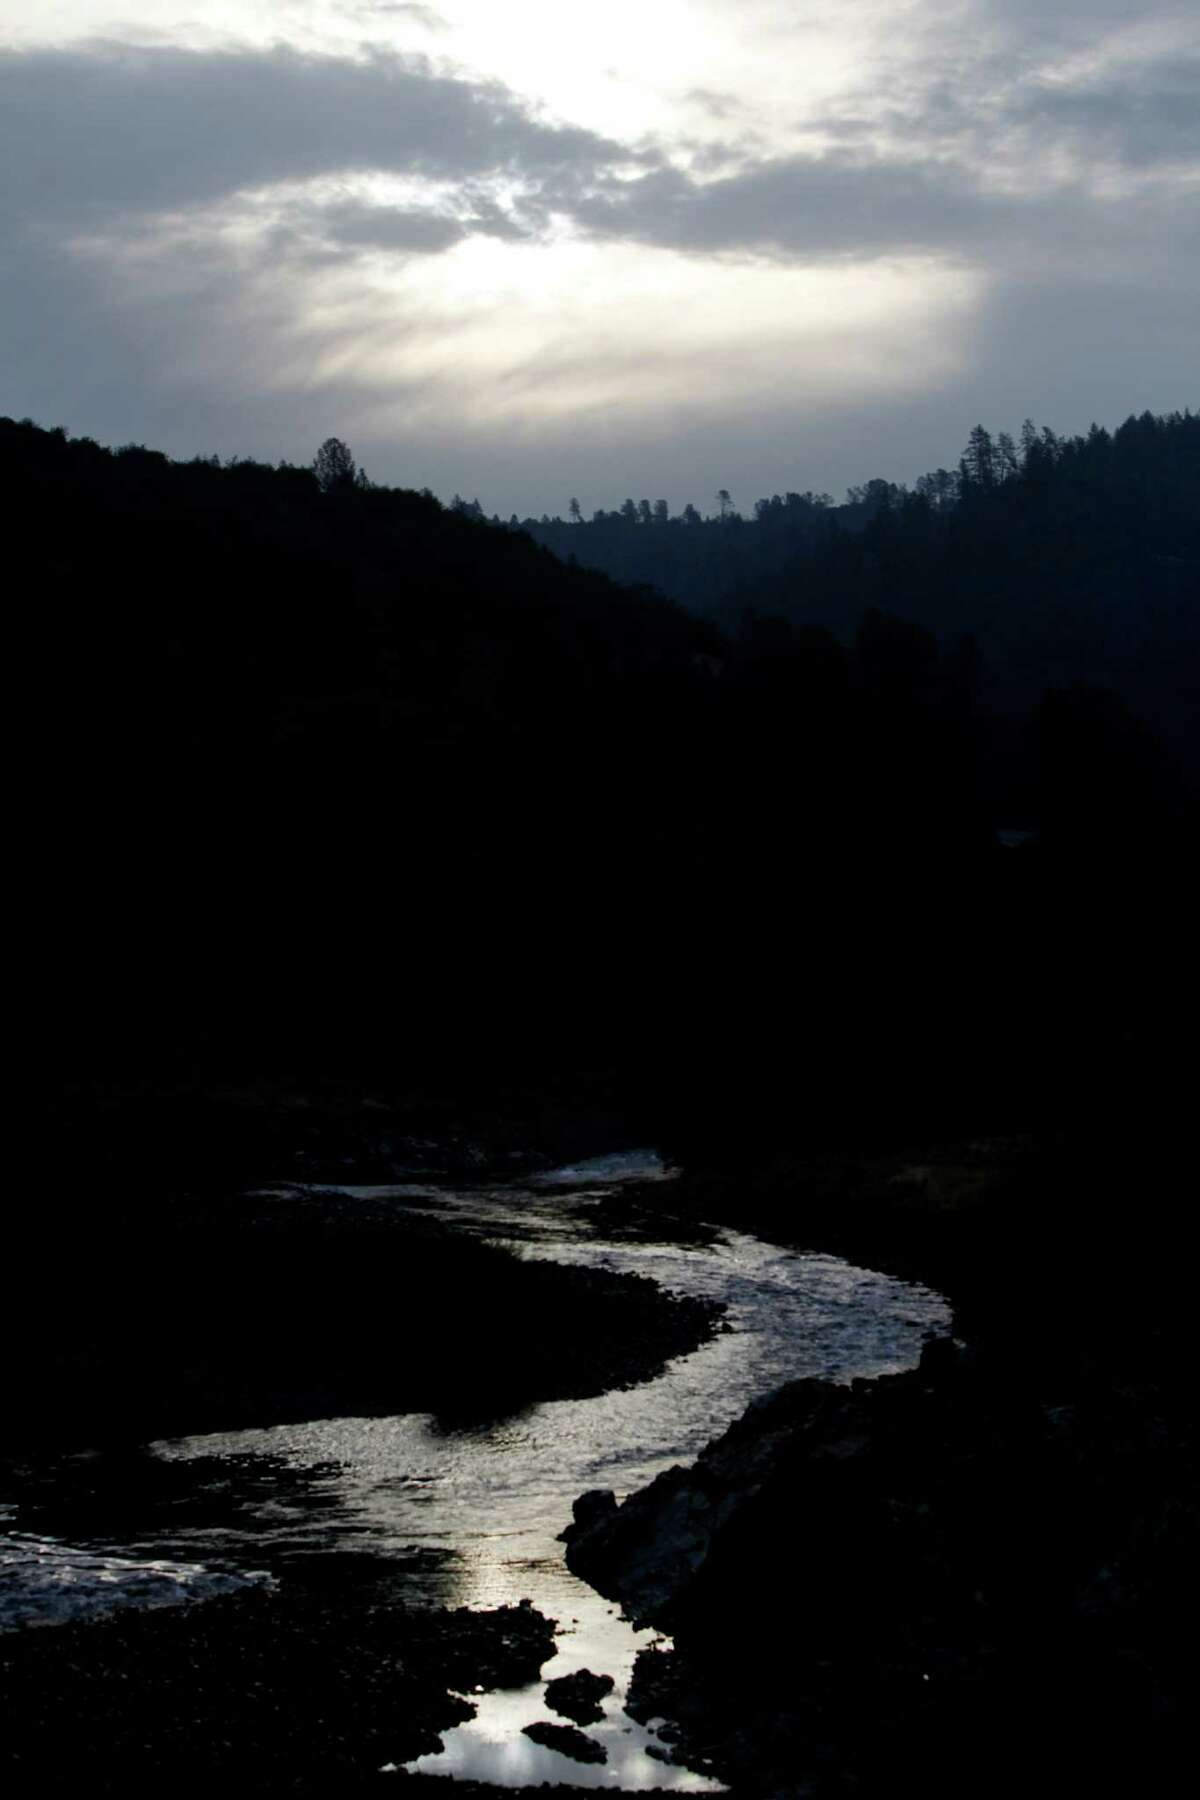 The sun rises through clouds above the American River near the Foresthill Bridge in Auburn.